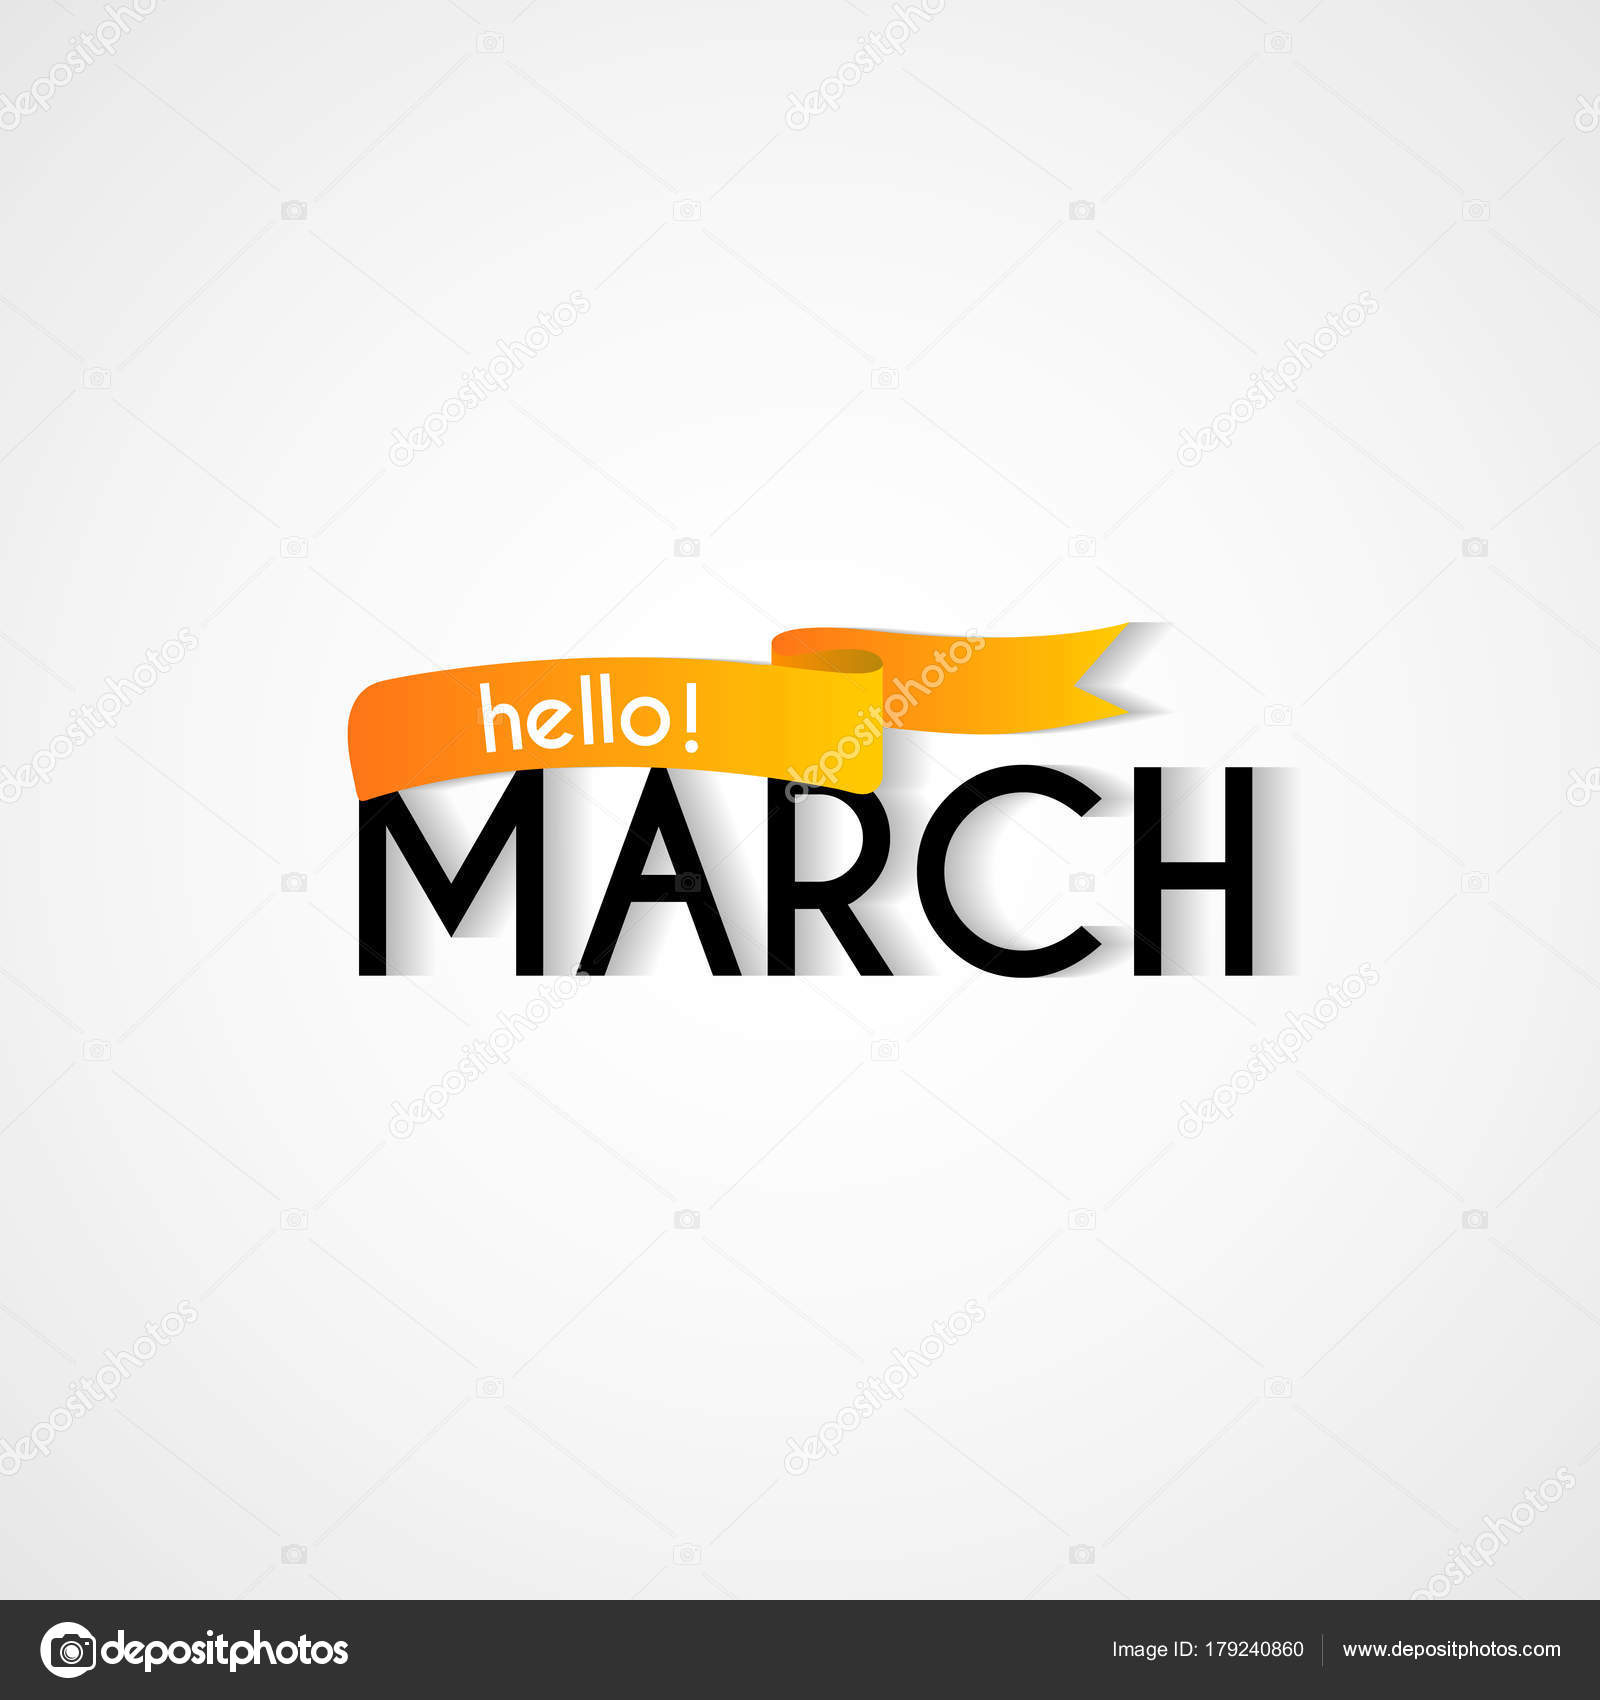 Happy new month march background design stock vector motokiwo happy new month march background design stock vector m4hsunfo